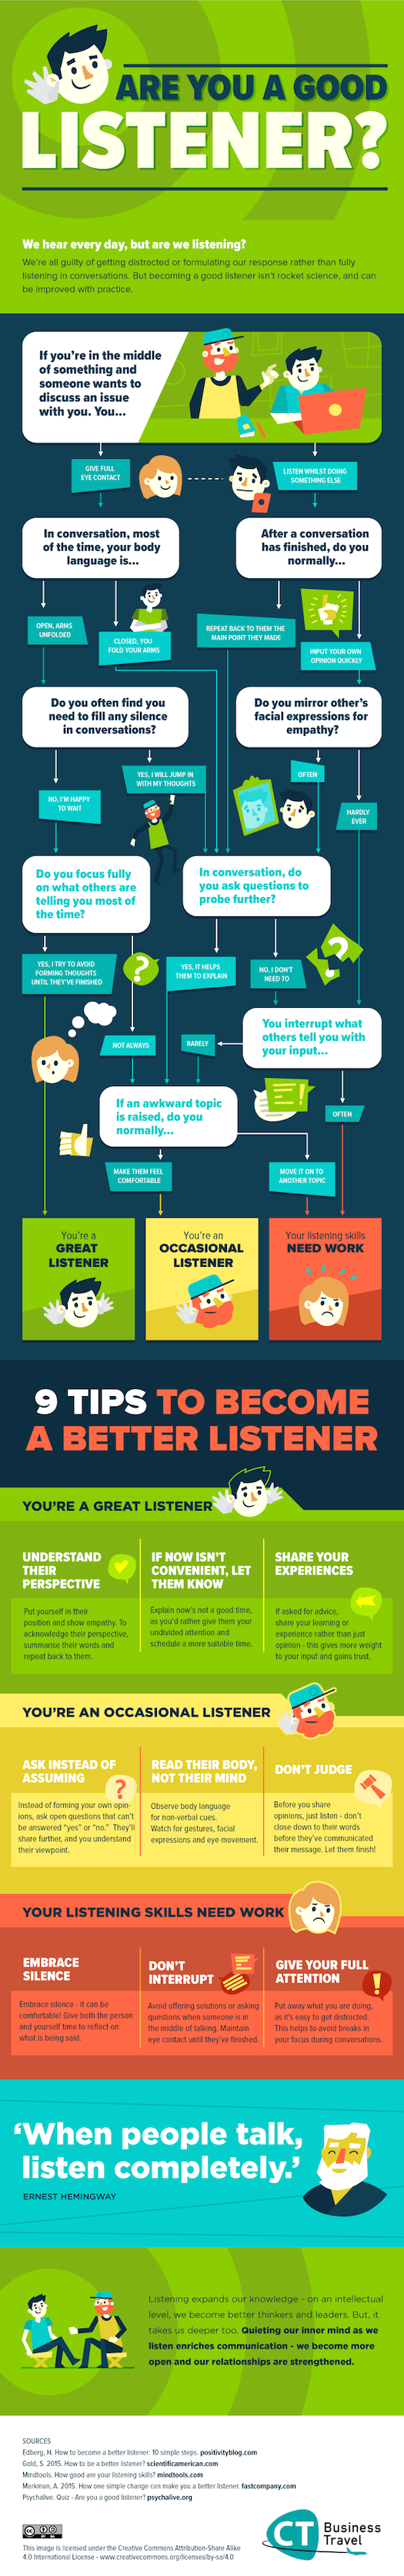 Are-you-a-good-listener-DV3-2